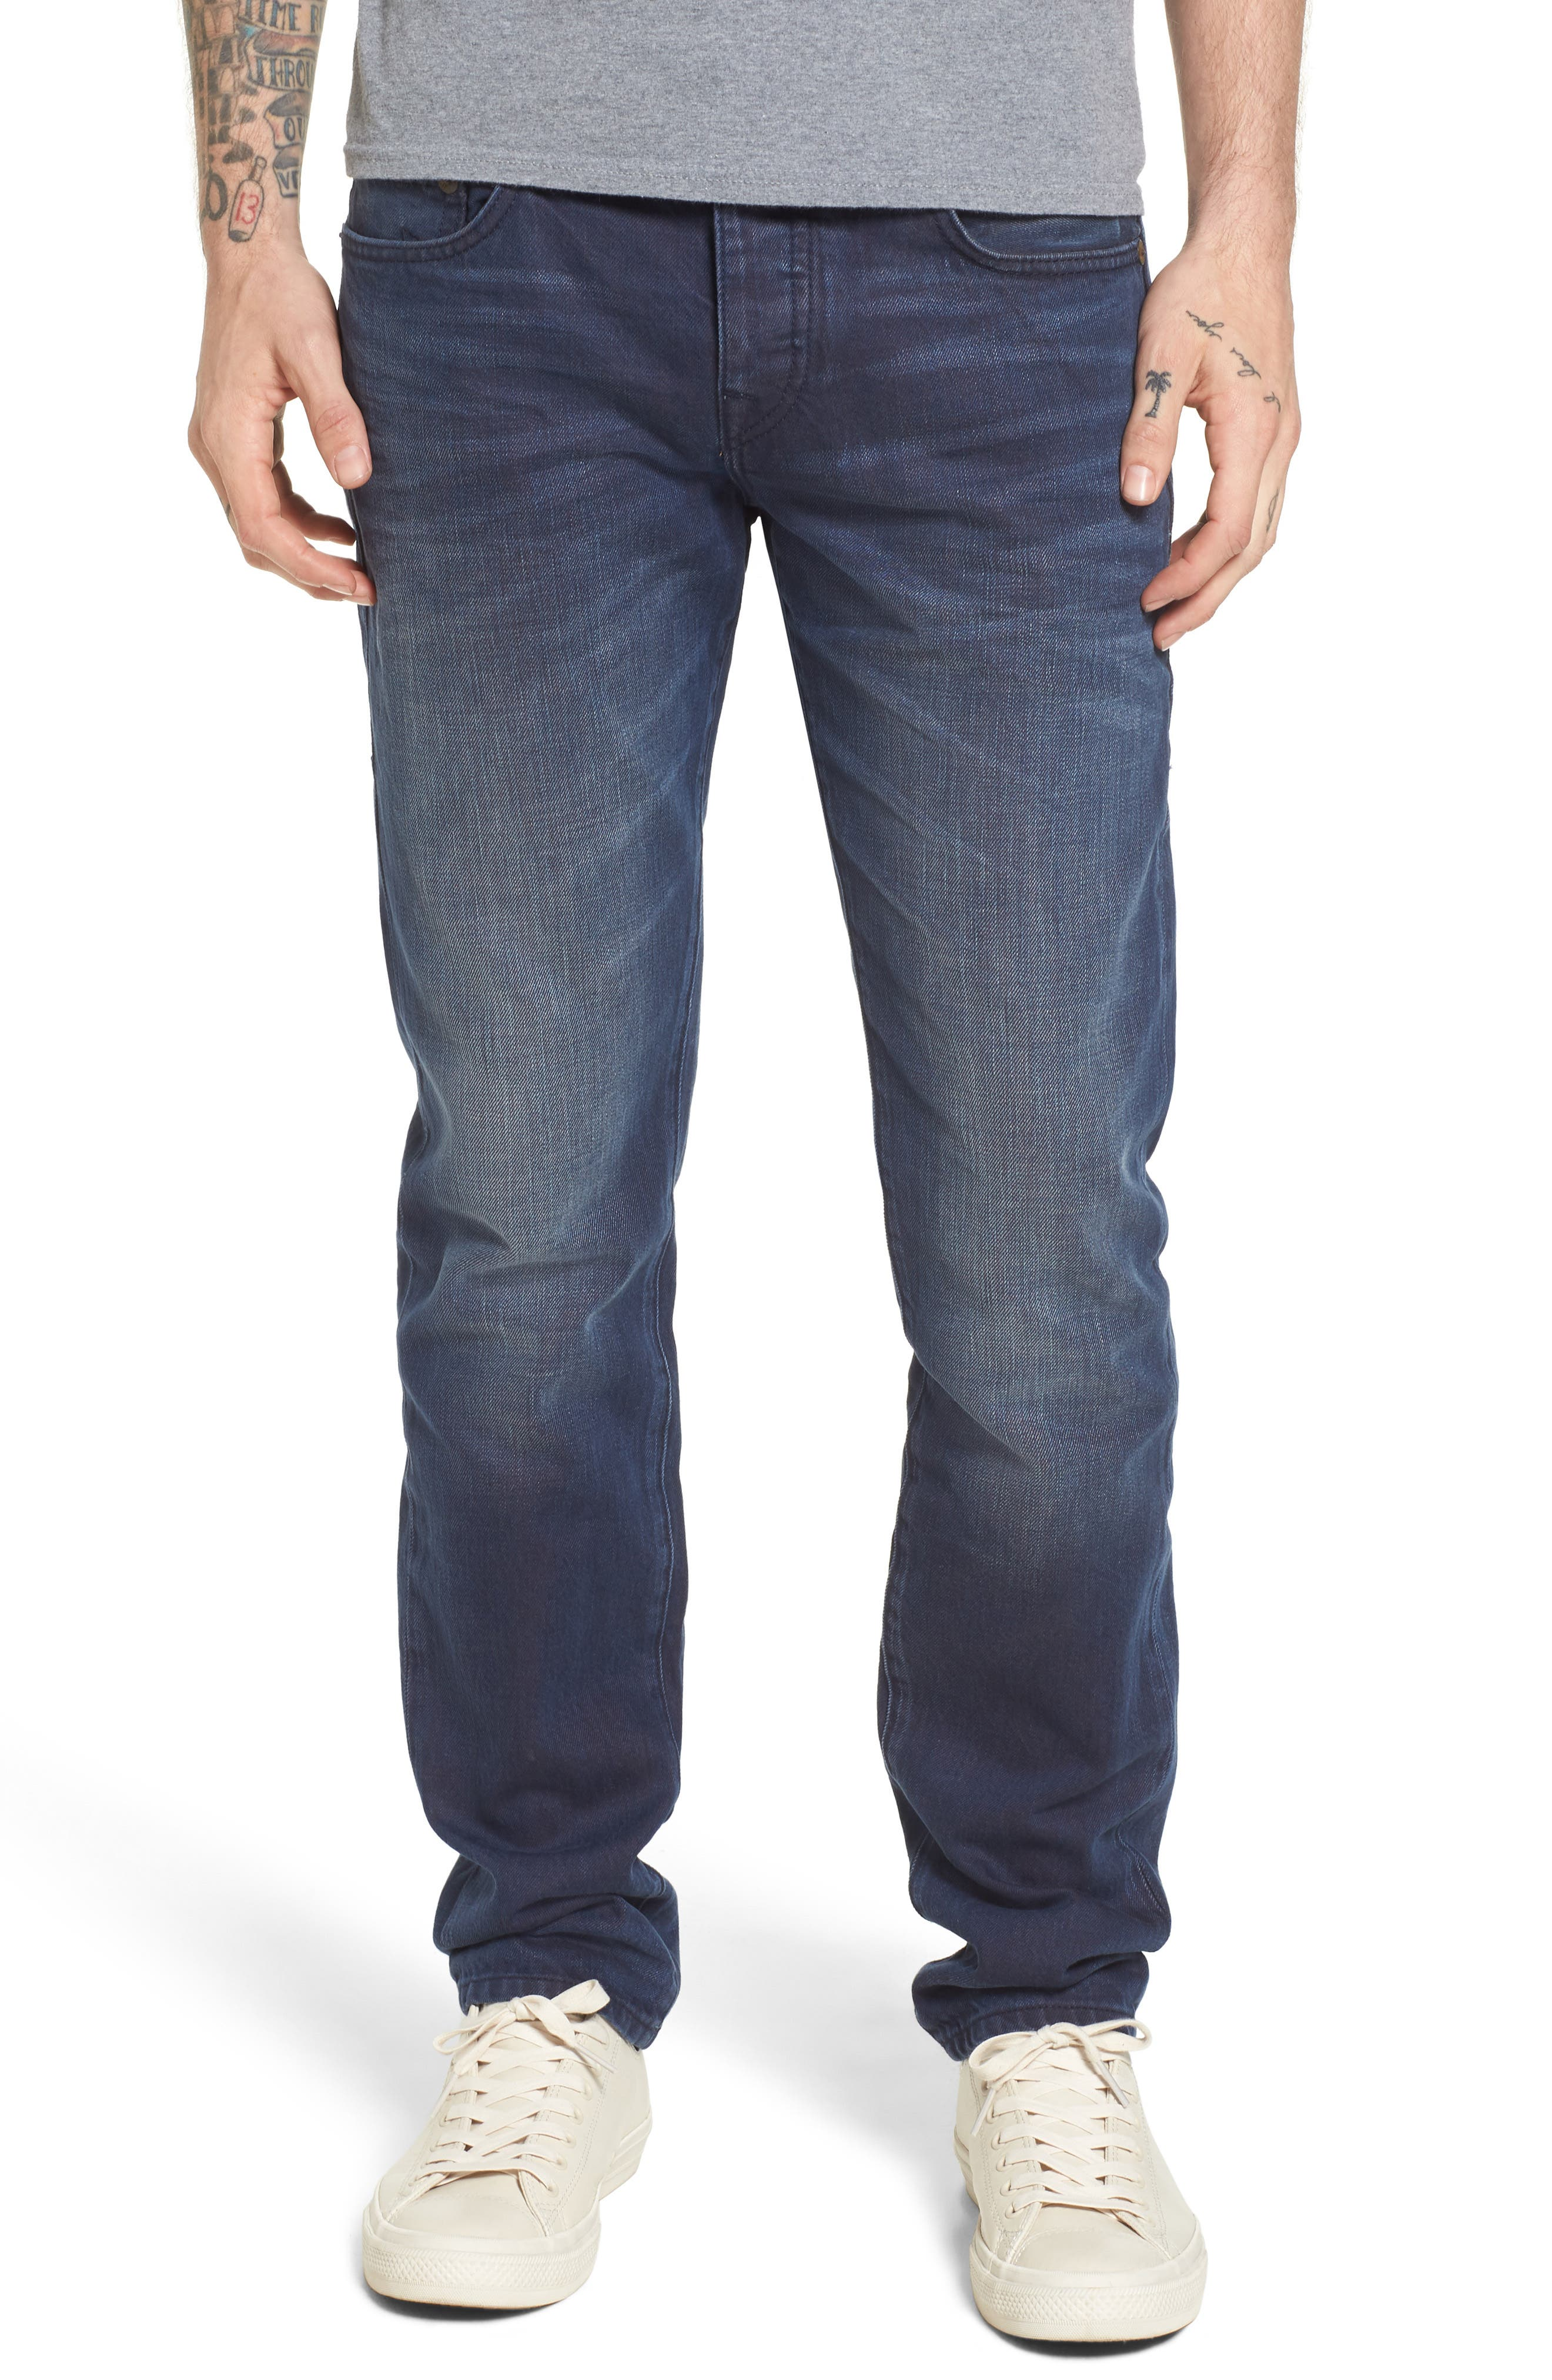 True Religion Brand Jeans Rocco Skinny Fit Jeans (Blue Mariner)